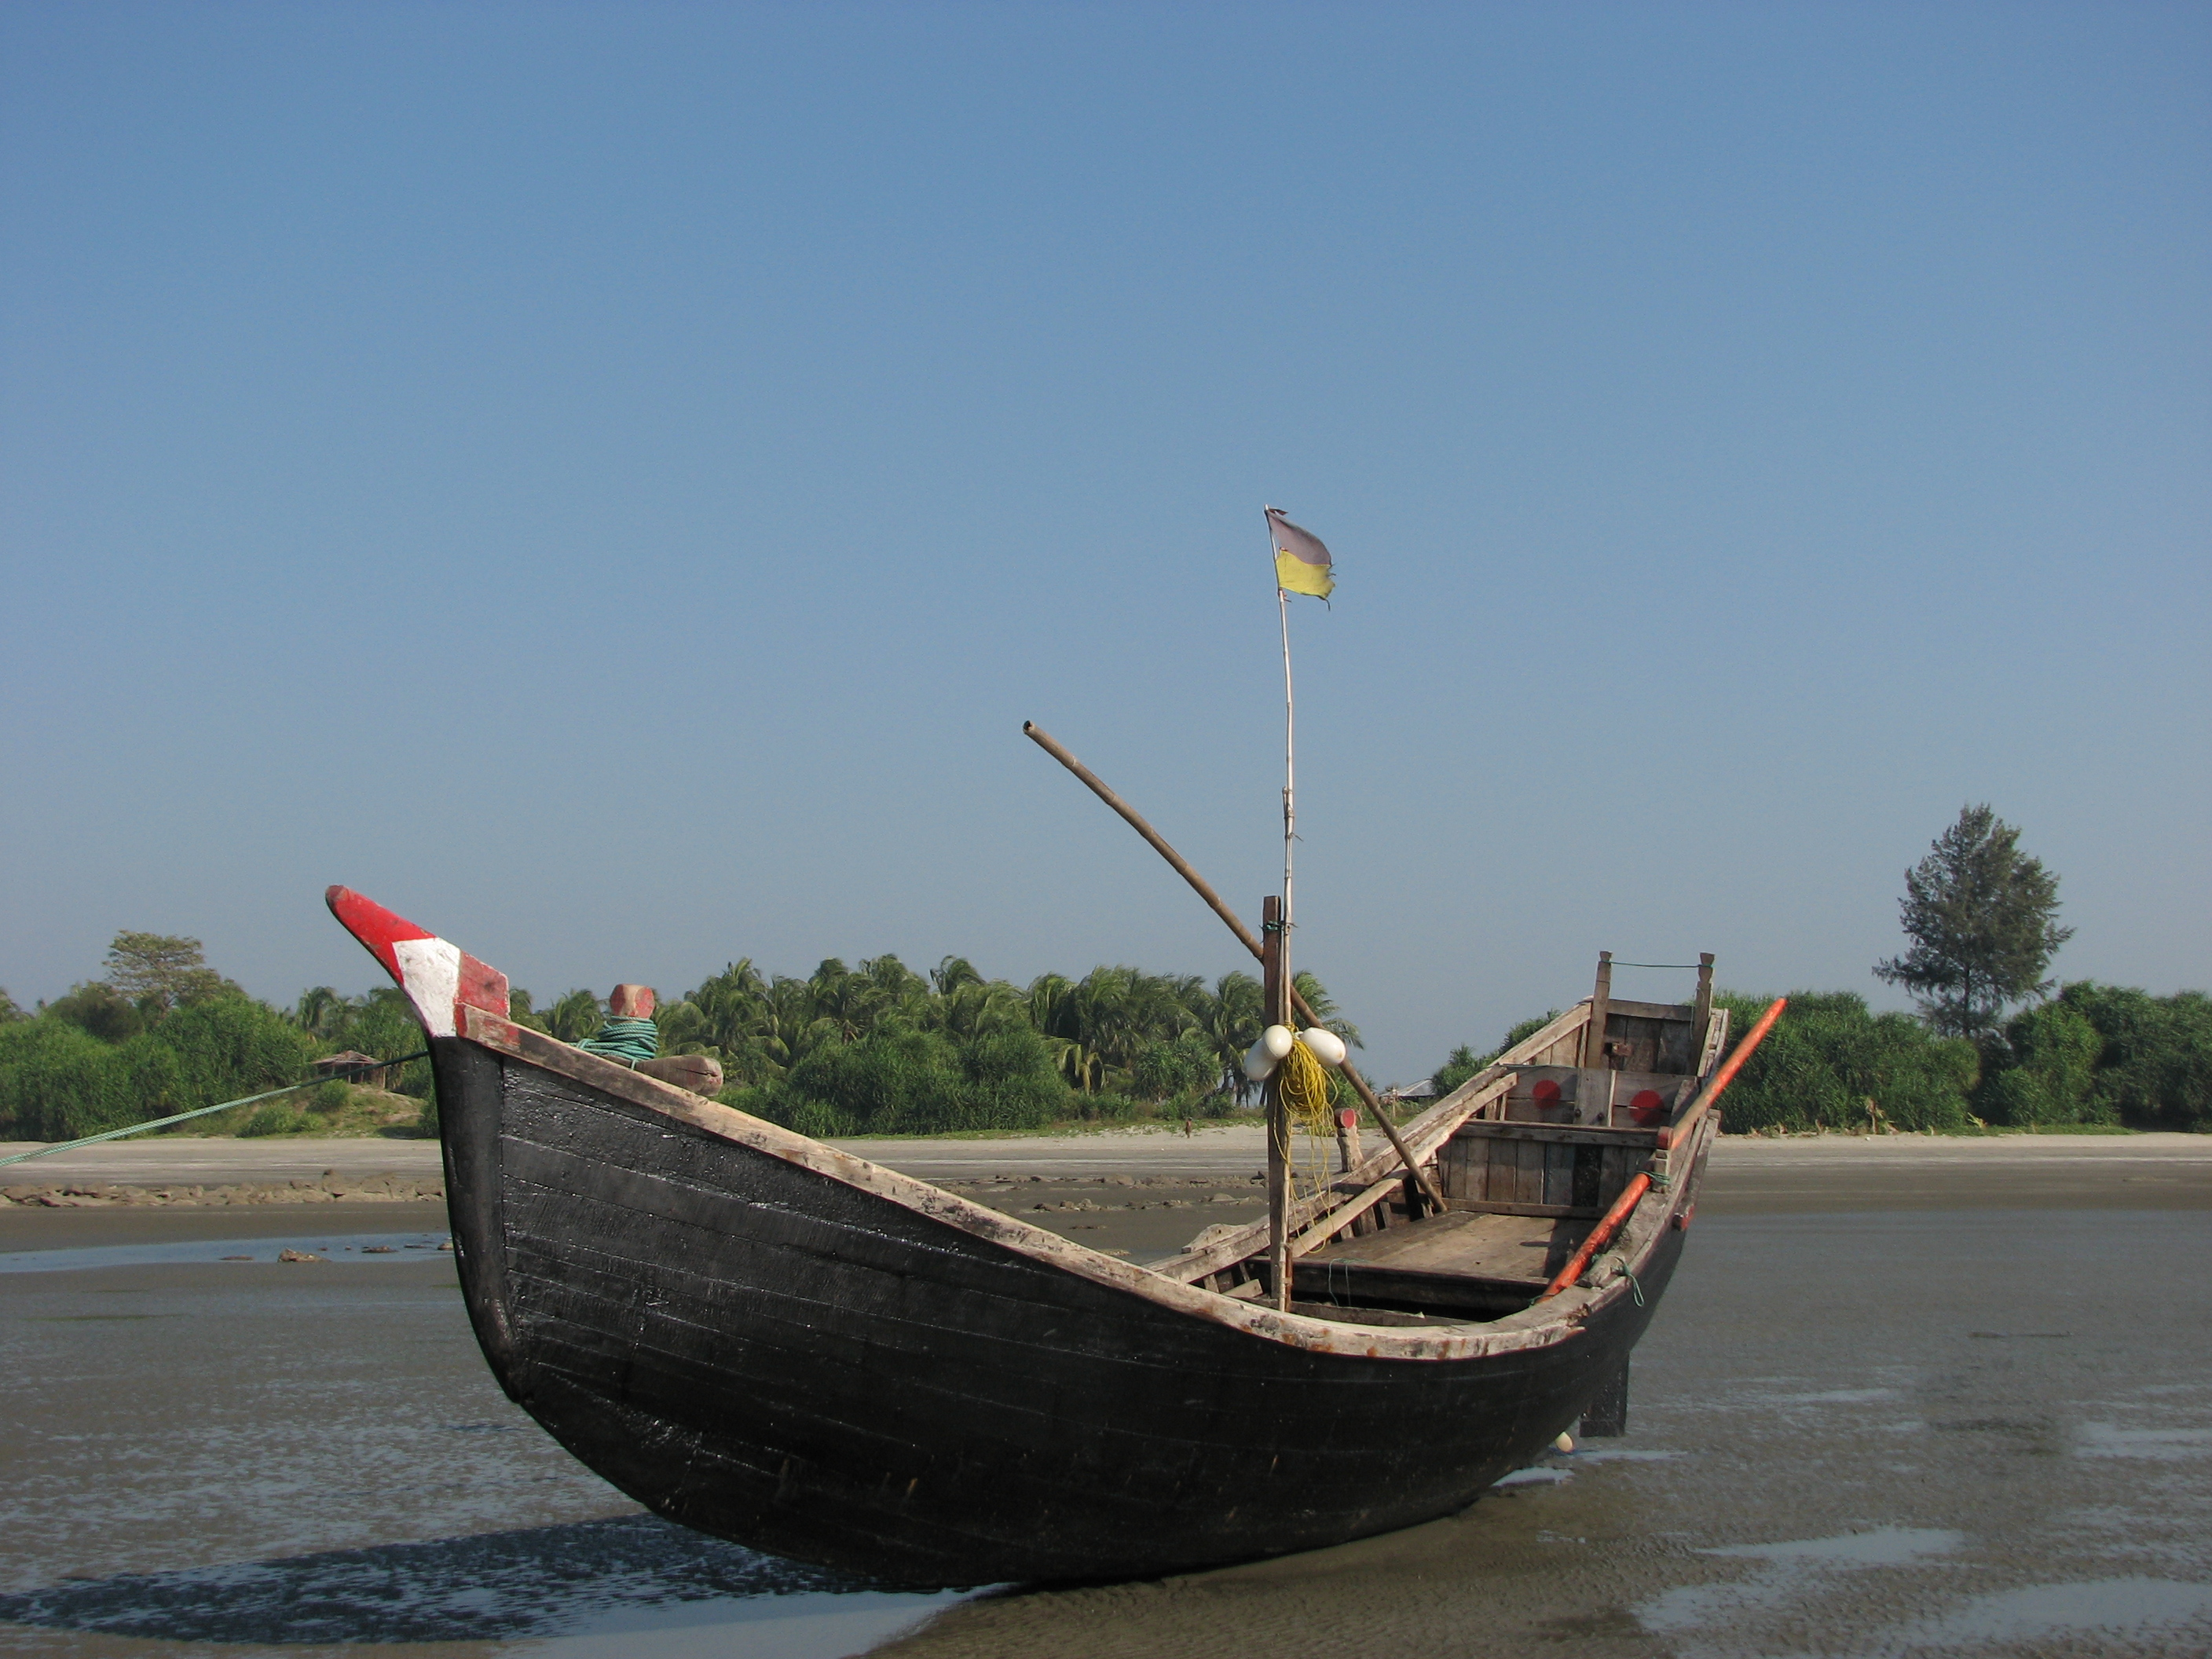 File:Fishing Boat BD1.JPG - Wikimedia Commons